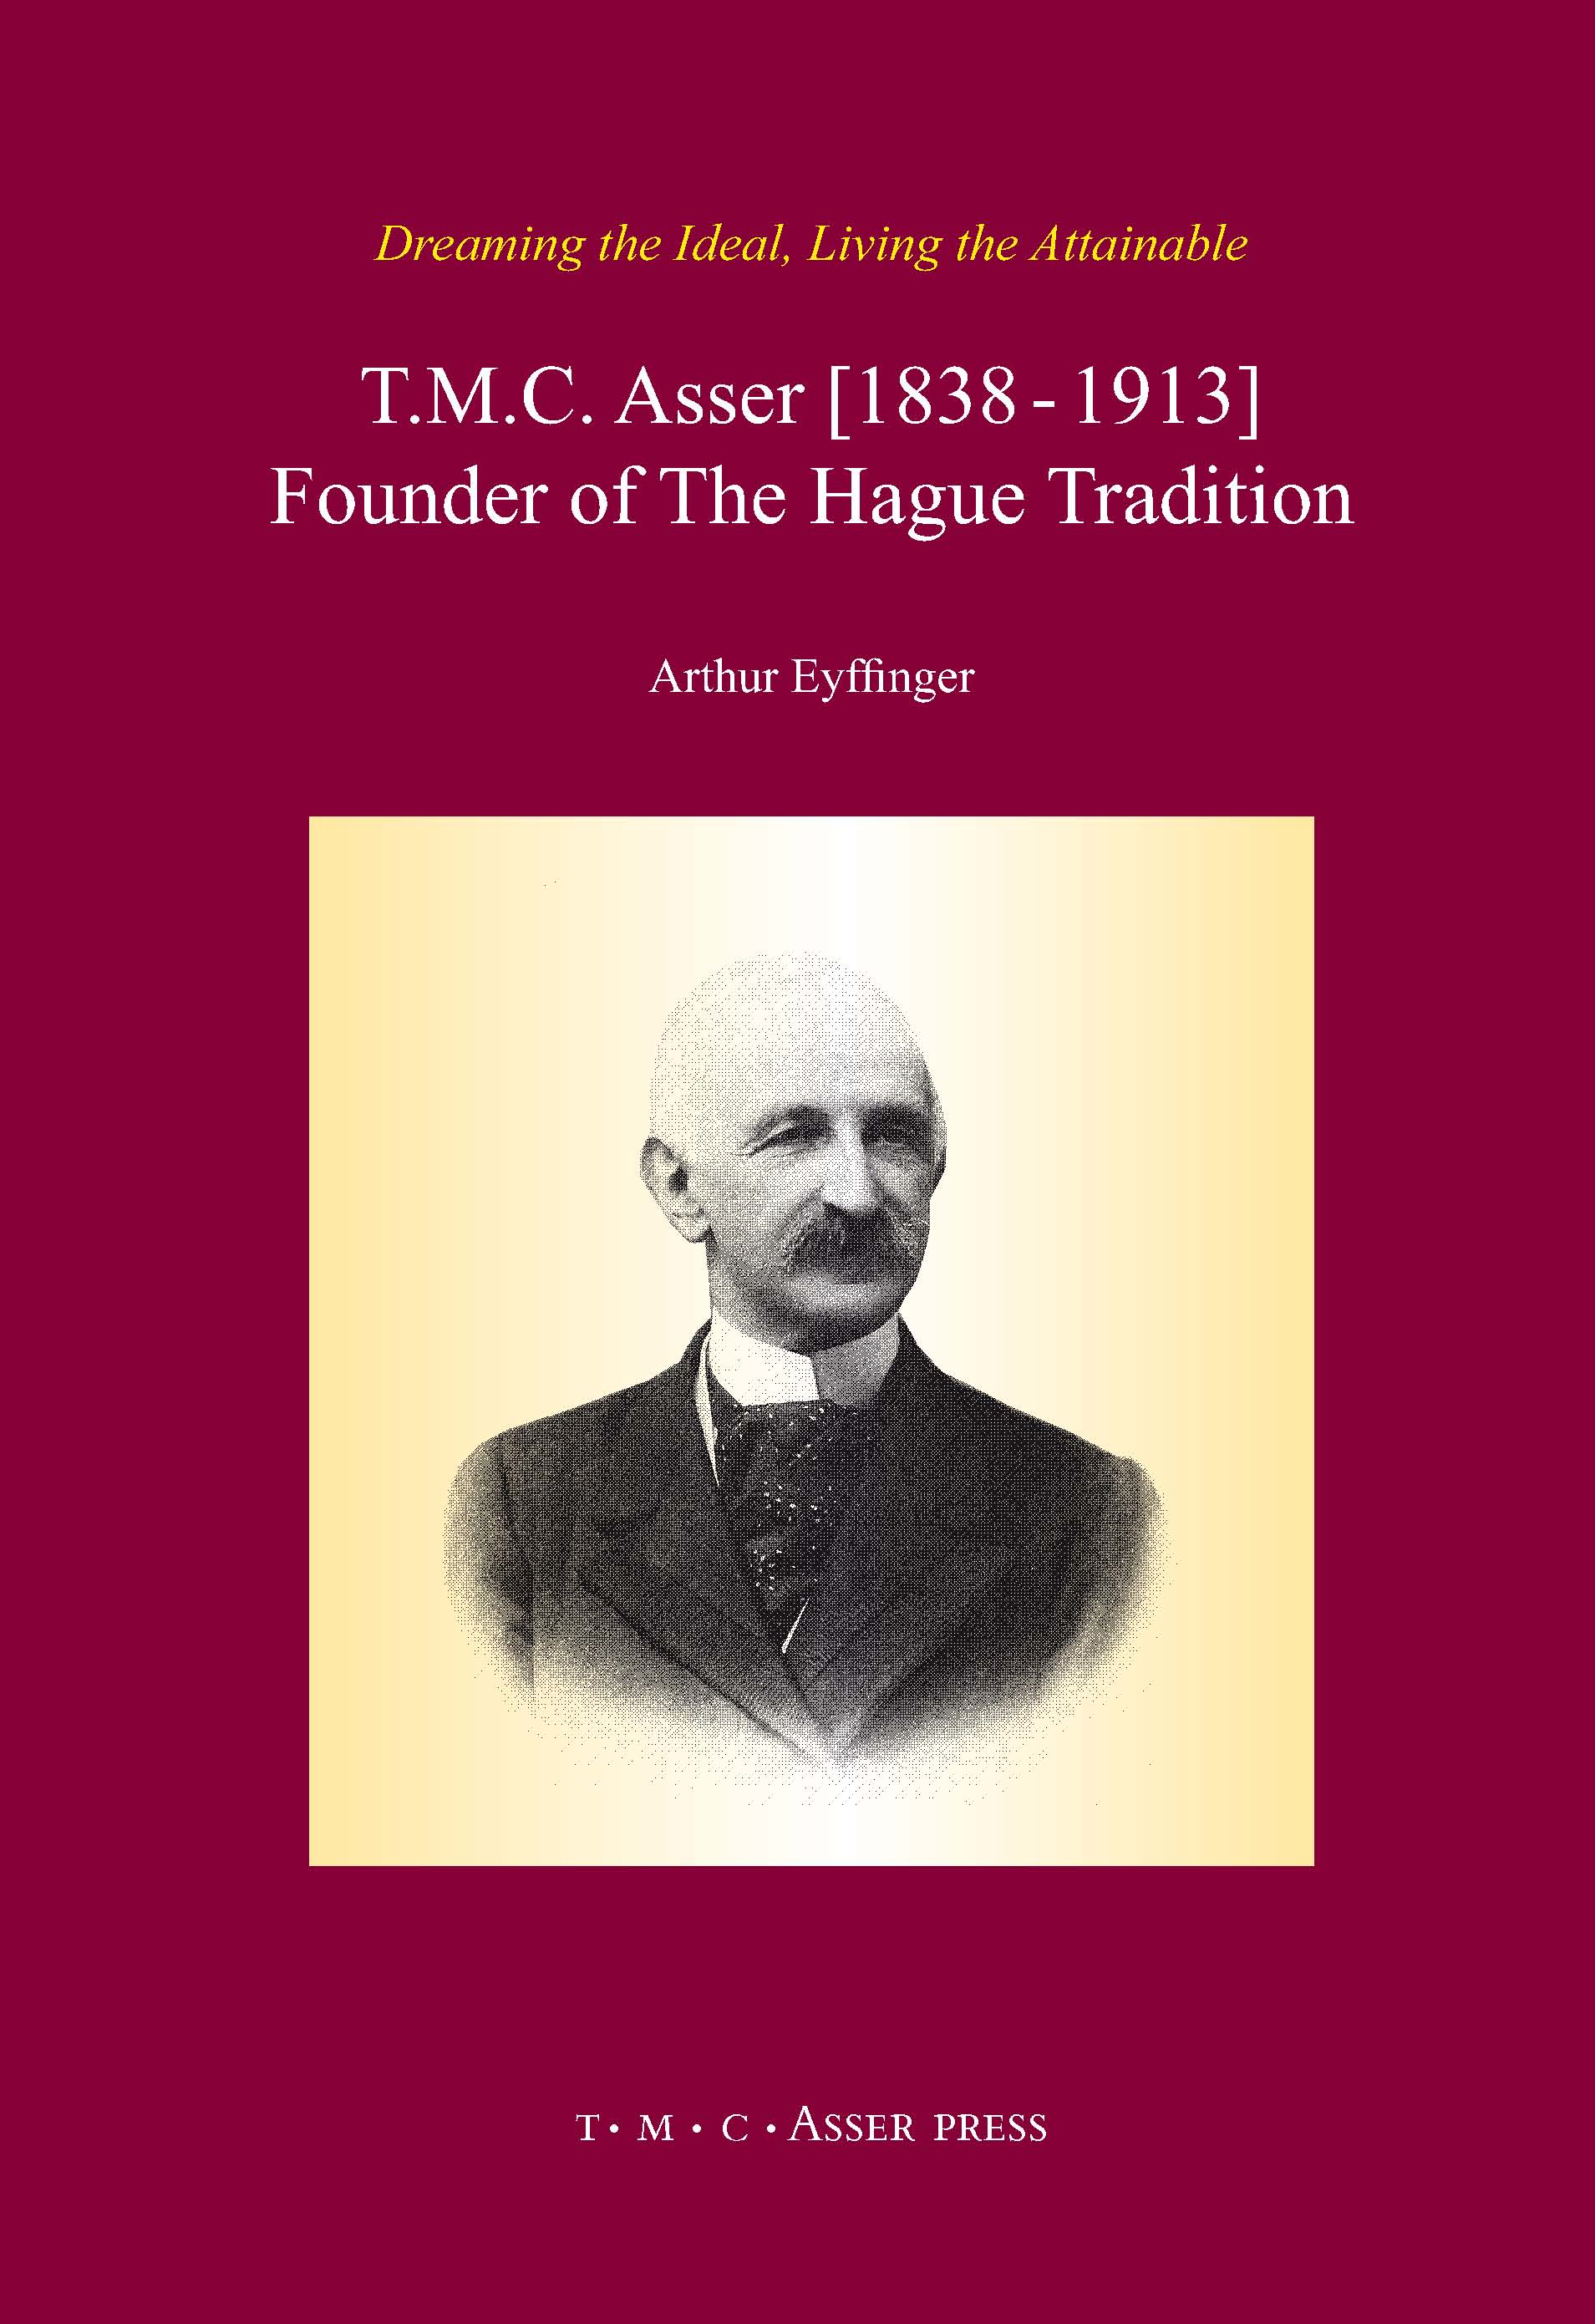 T.M.C. Asser [1838 - 1913] - Founder of The Hague Tradition